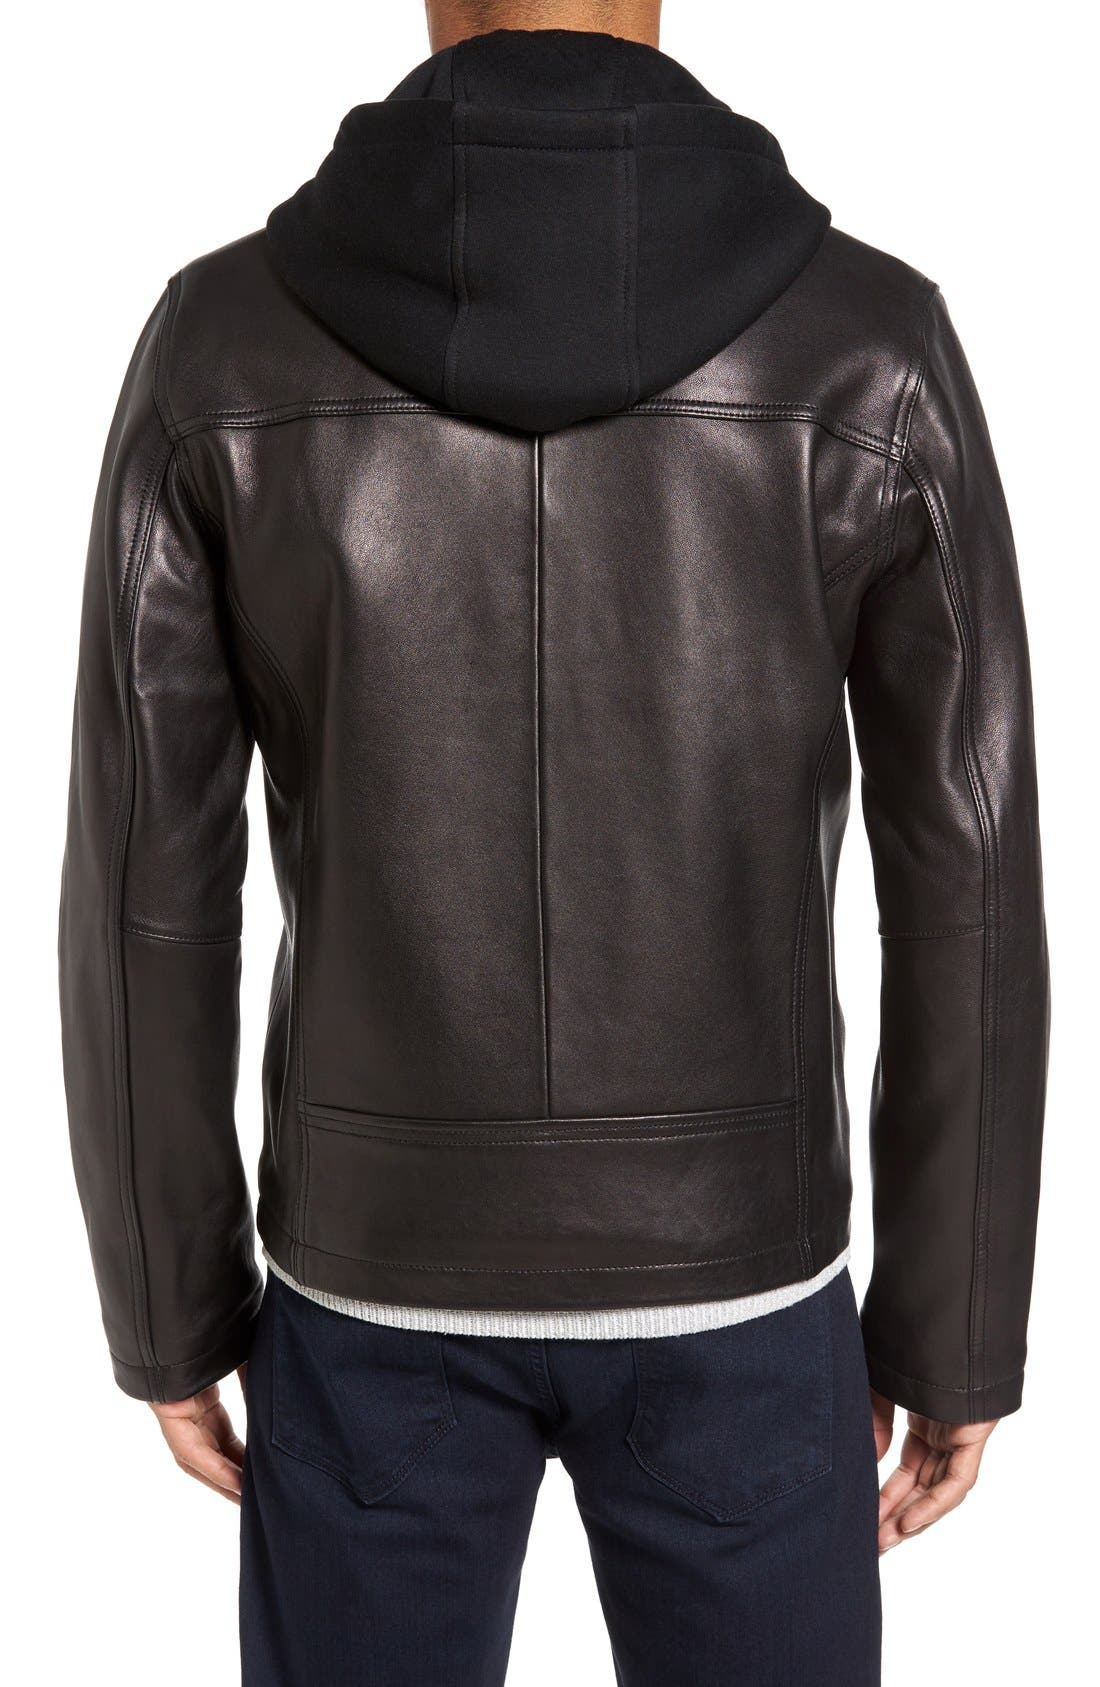 Leather Jacket with Removable Hooded Bib,                             Alternate thumbnail 2, color,                             001